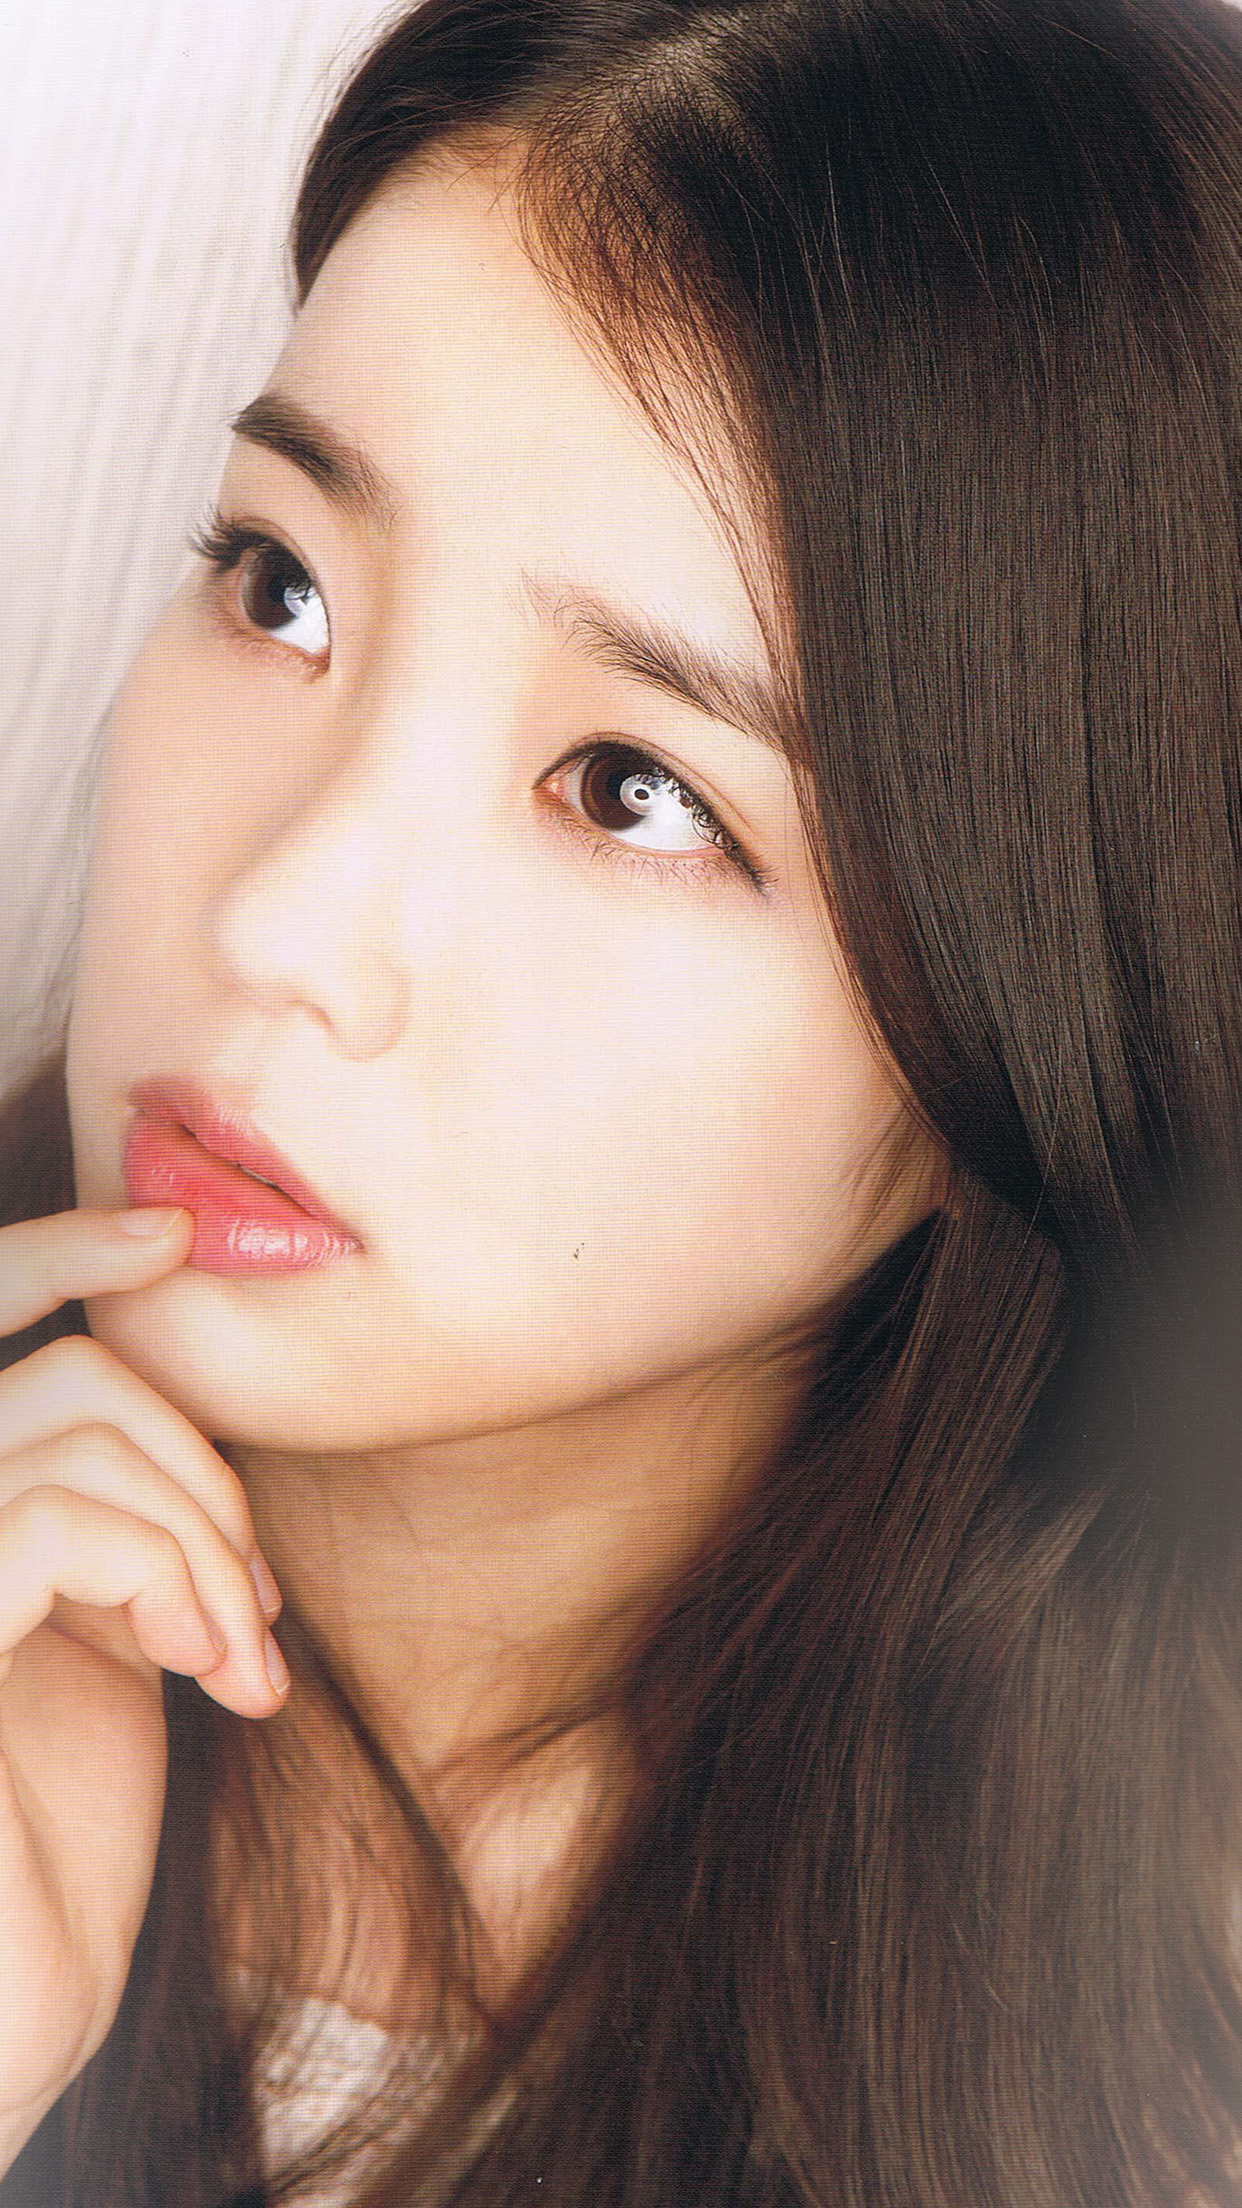 Hl65 Kpop Iu Girl Music Cute Wallpaper